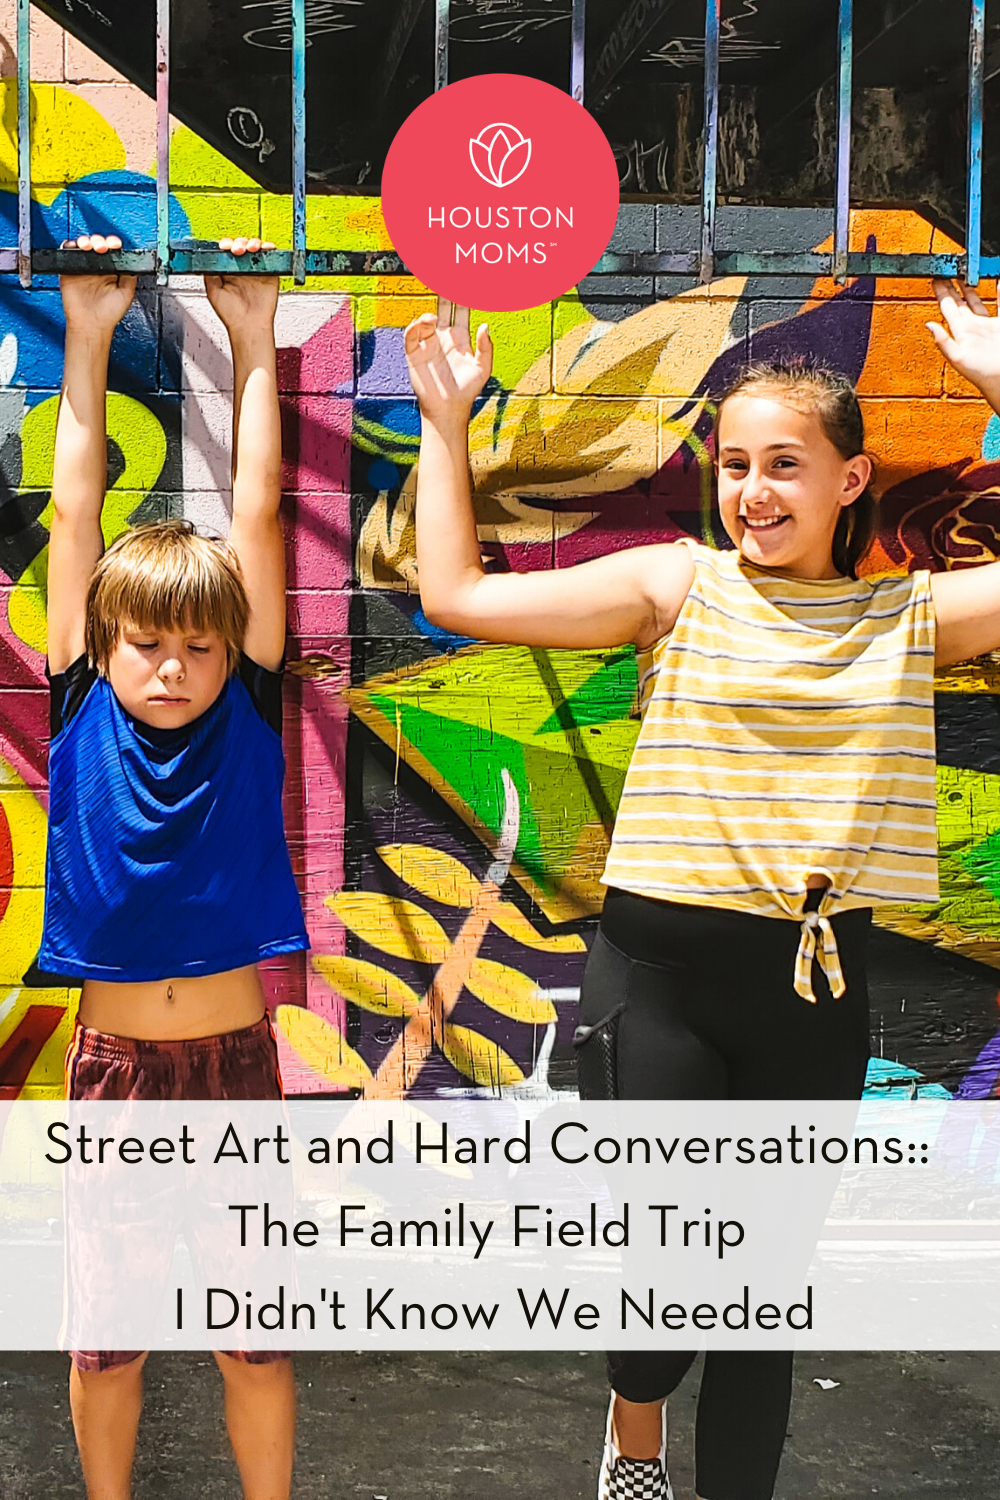 "Houston Moms ""Street Art and Hard Conversations:: The Family Field Trip I Didn't Know We Needed"" #houstonmoms #houstonmomsblog #momsaroundhouston"